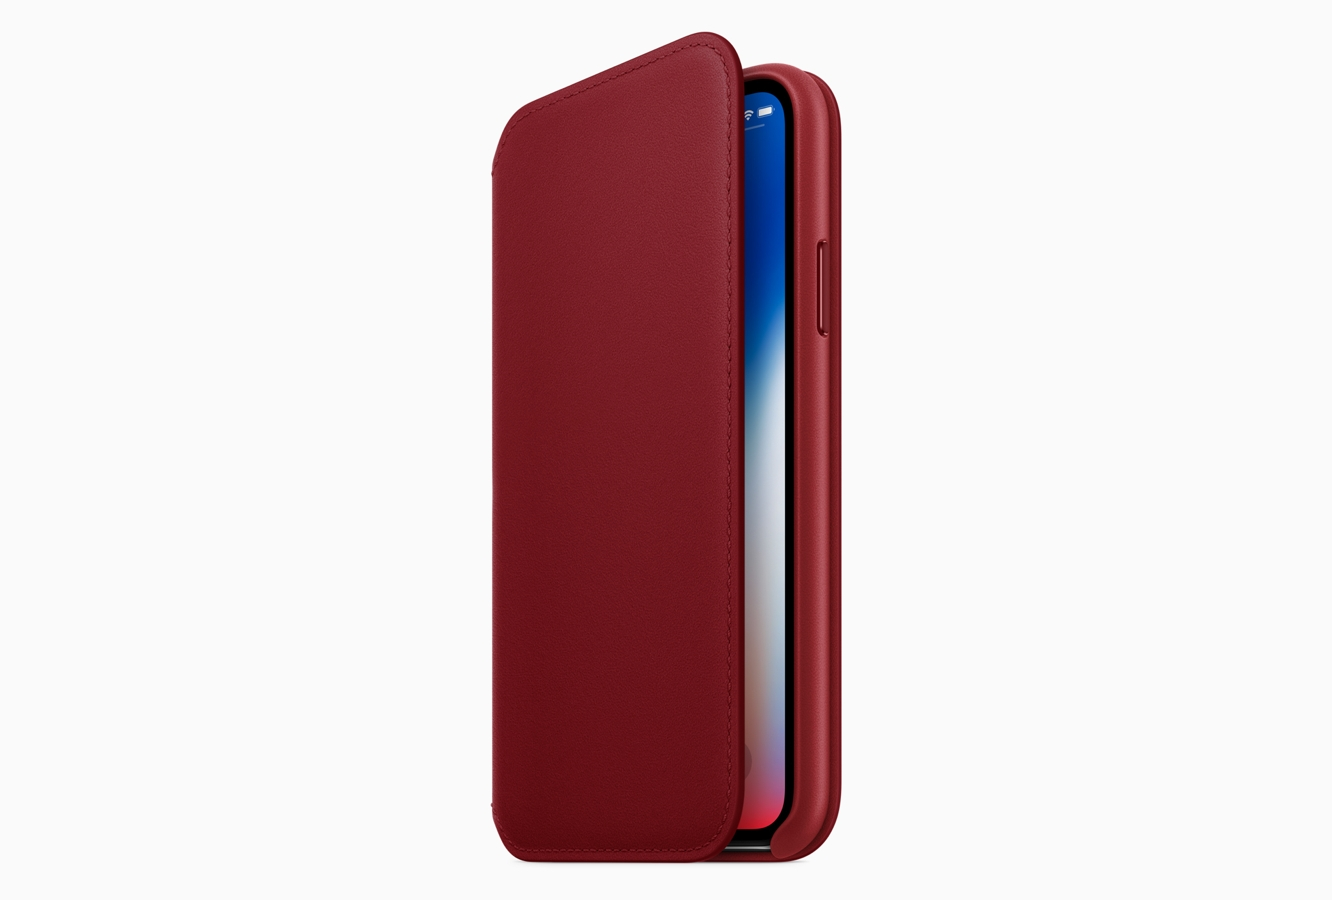 Apple unveils (PRODUCT)RED Edition iPhone 8, iPhone 8 Plus, Folio for iPhone X